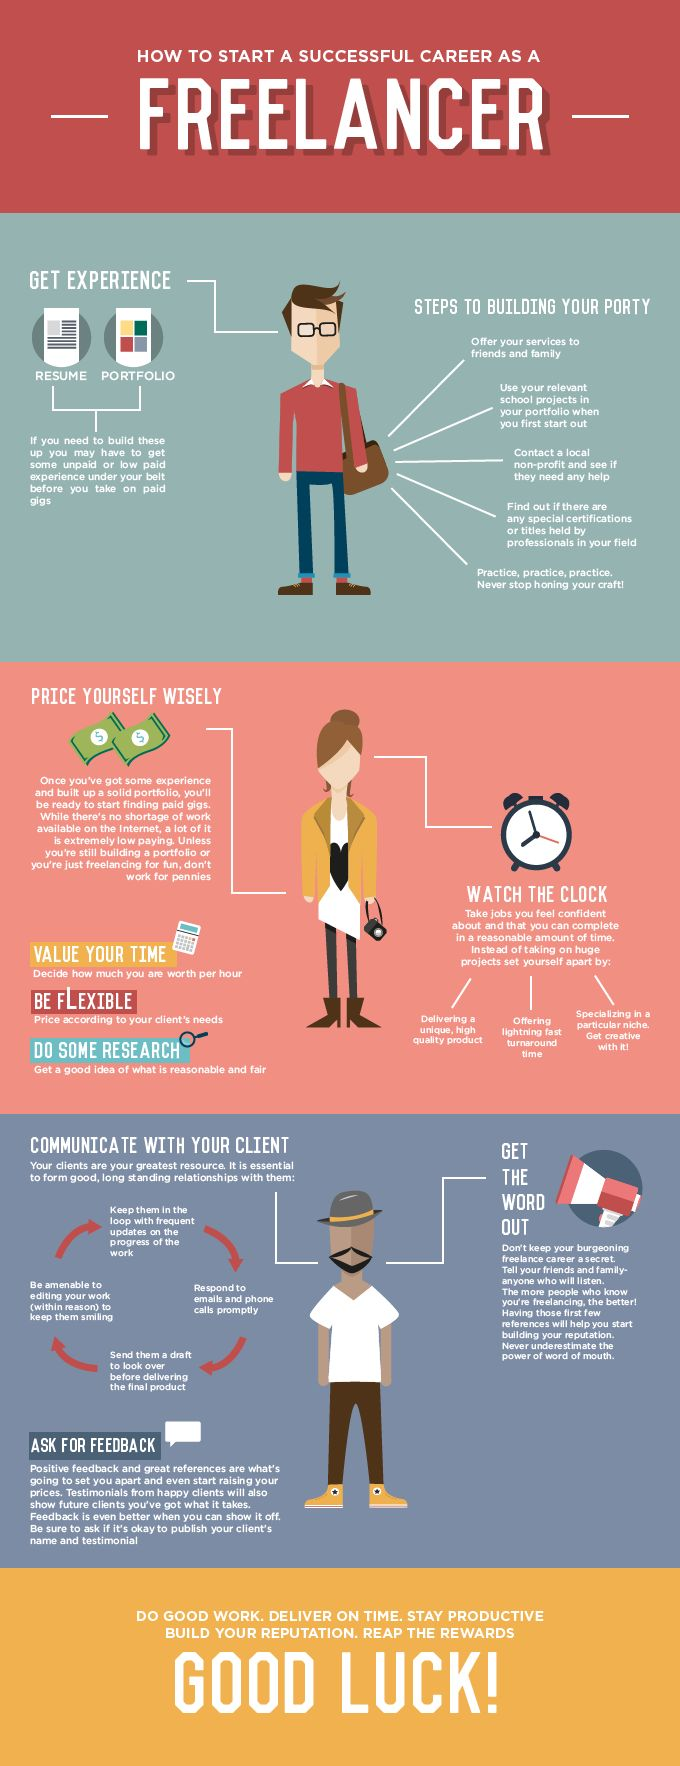 How To Start A Successful Career As A Freelancer (Infographic)